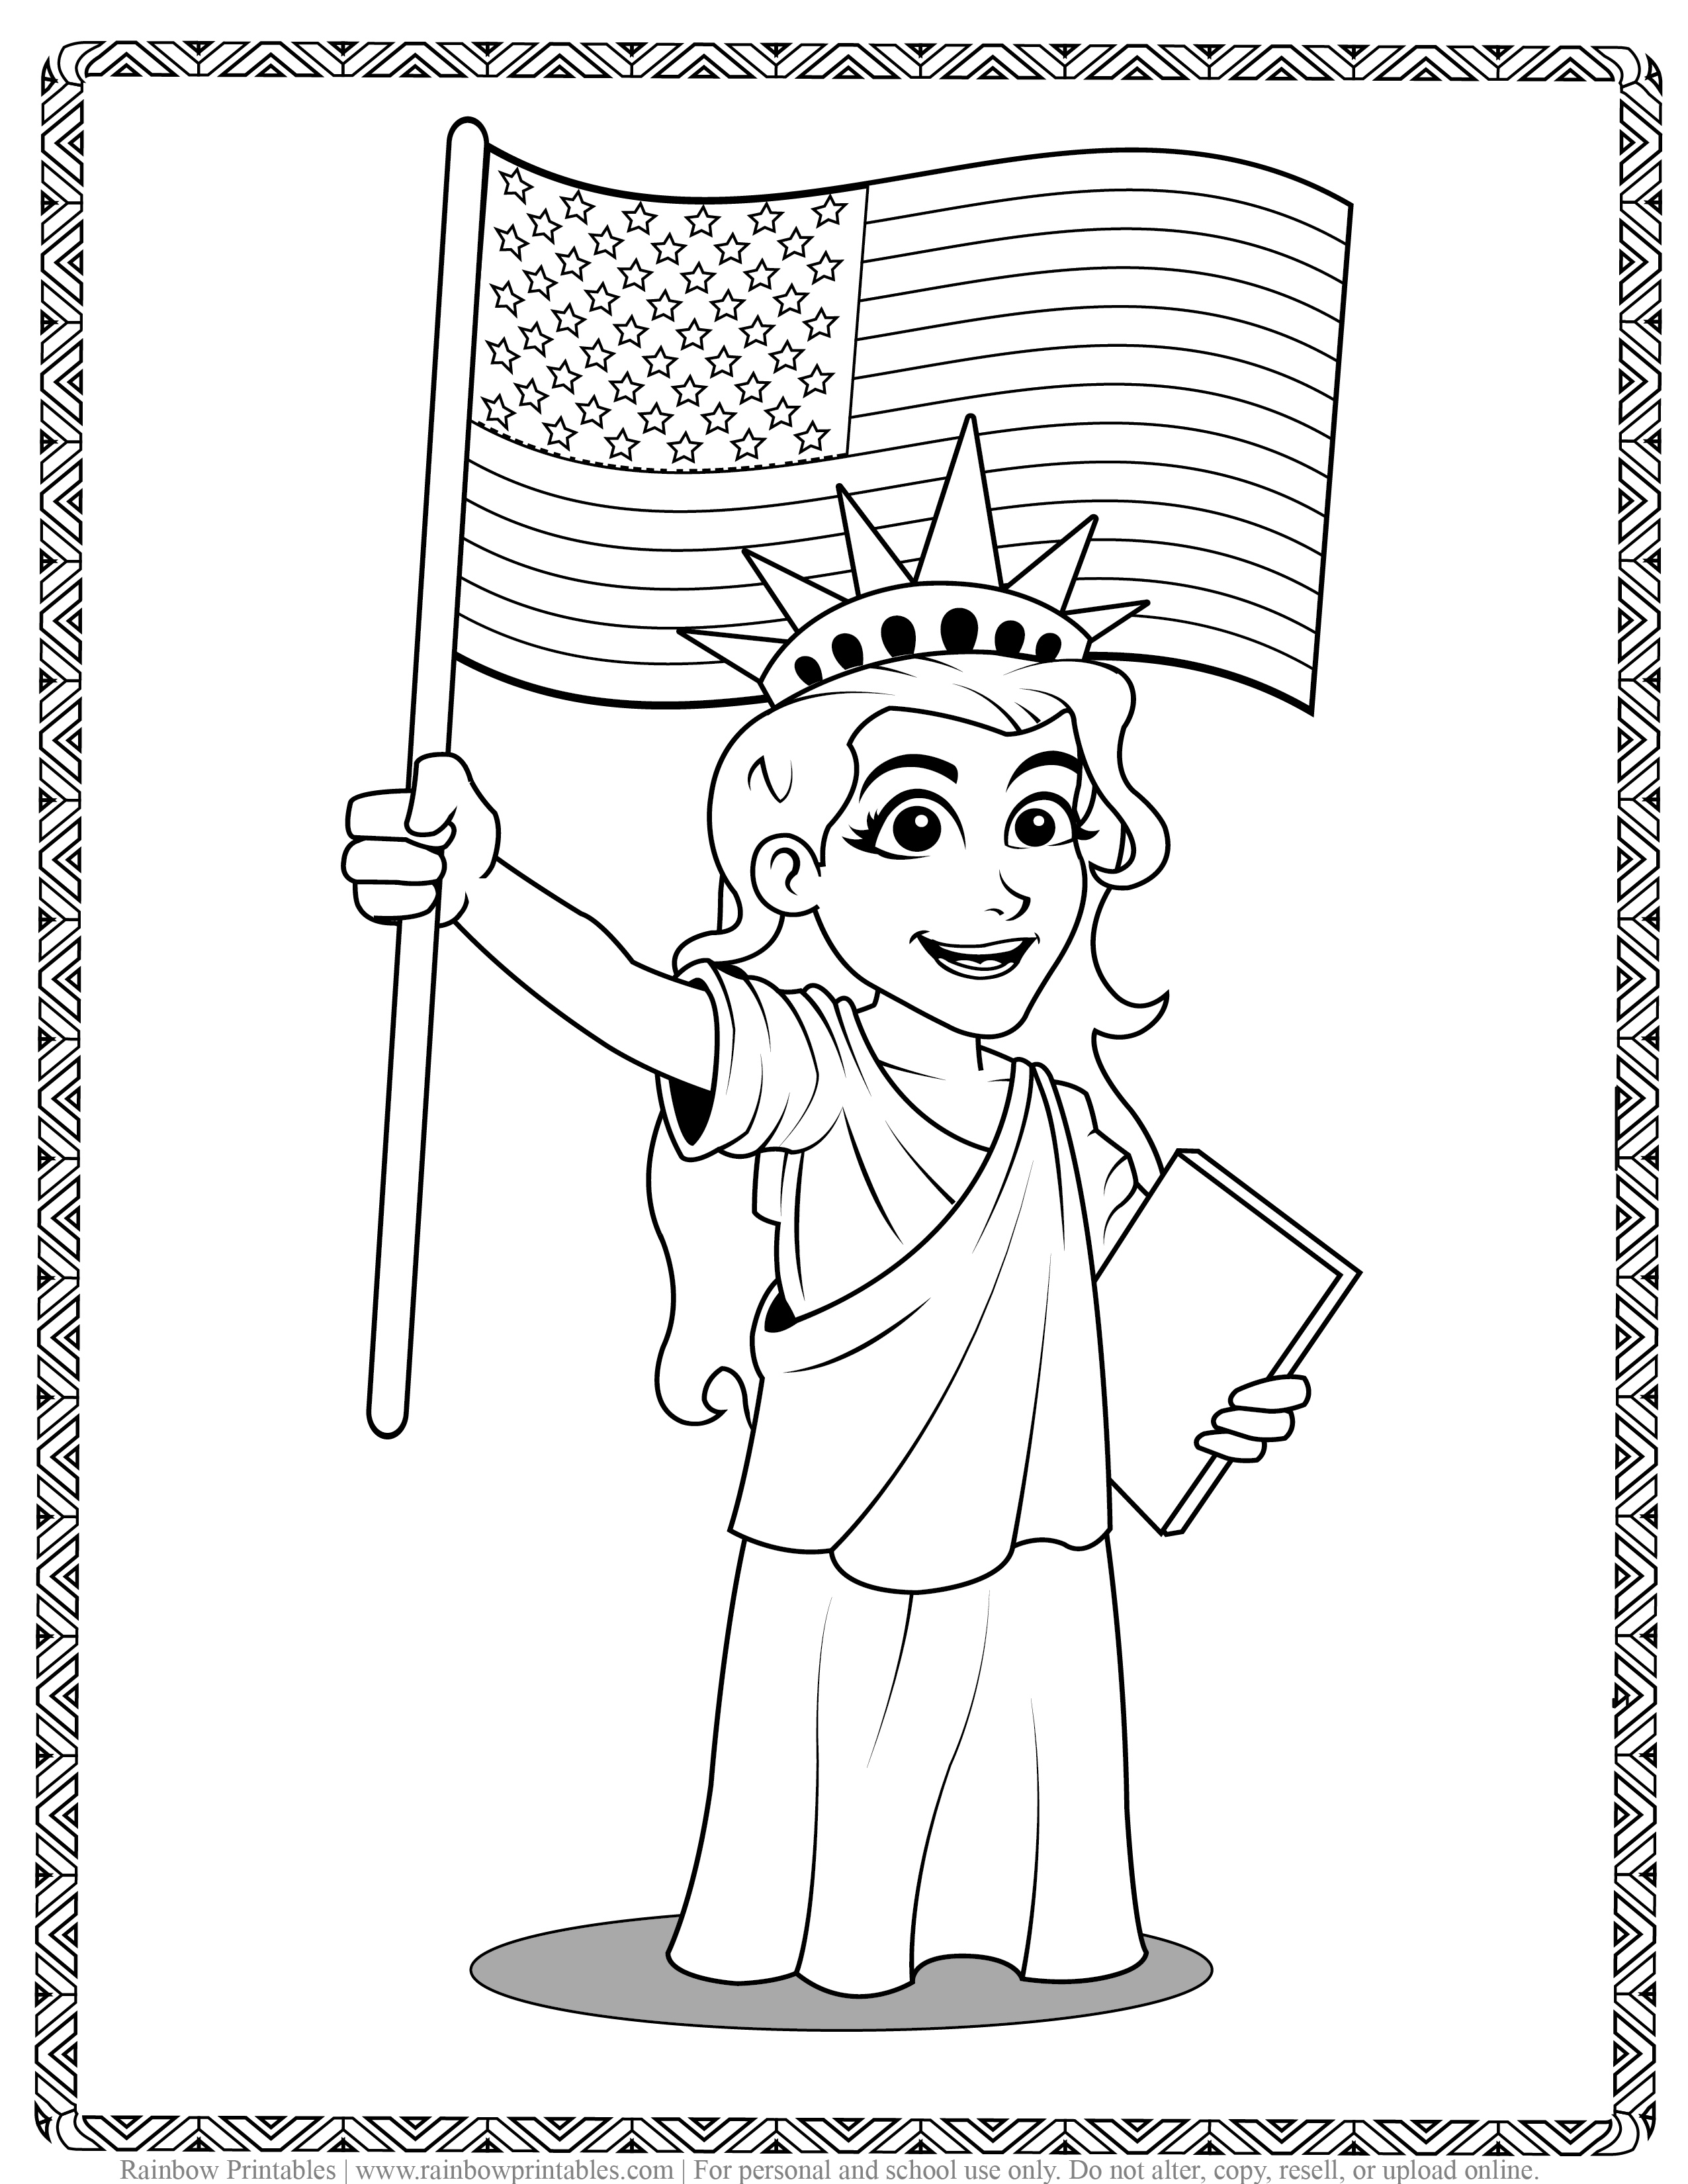 American Landmarks Lady Liberty Holding Flag Kids Patriotic July 4th independence Day Printables for Children, Toddlers, Coloring Pages, Activity for Preschool